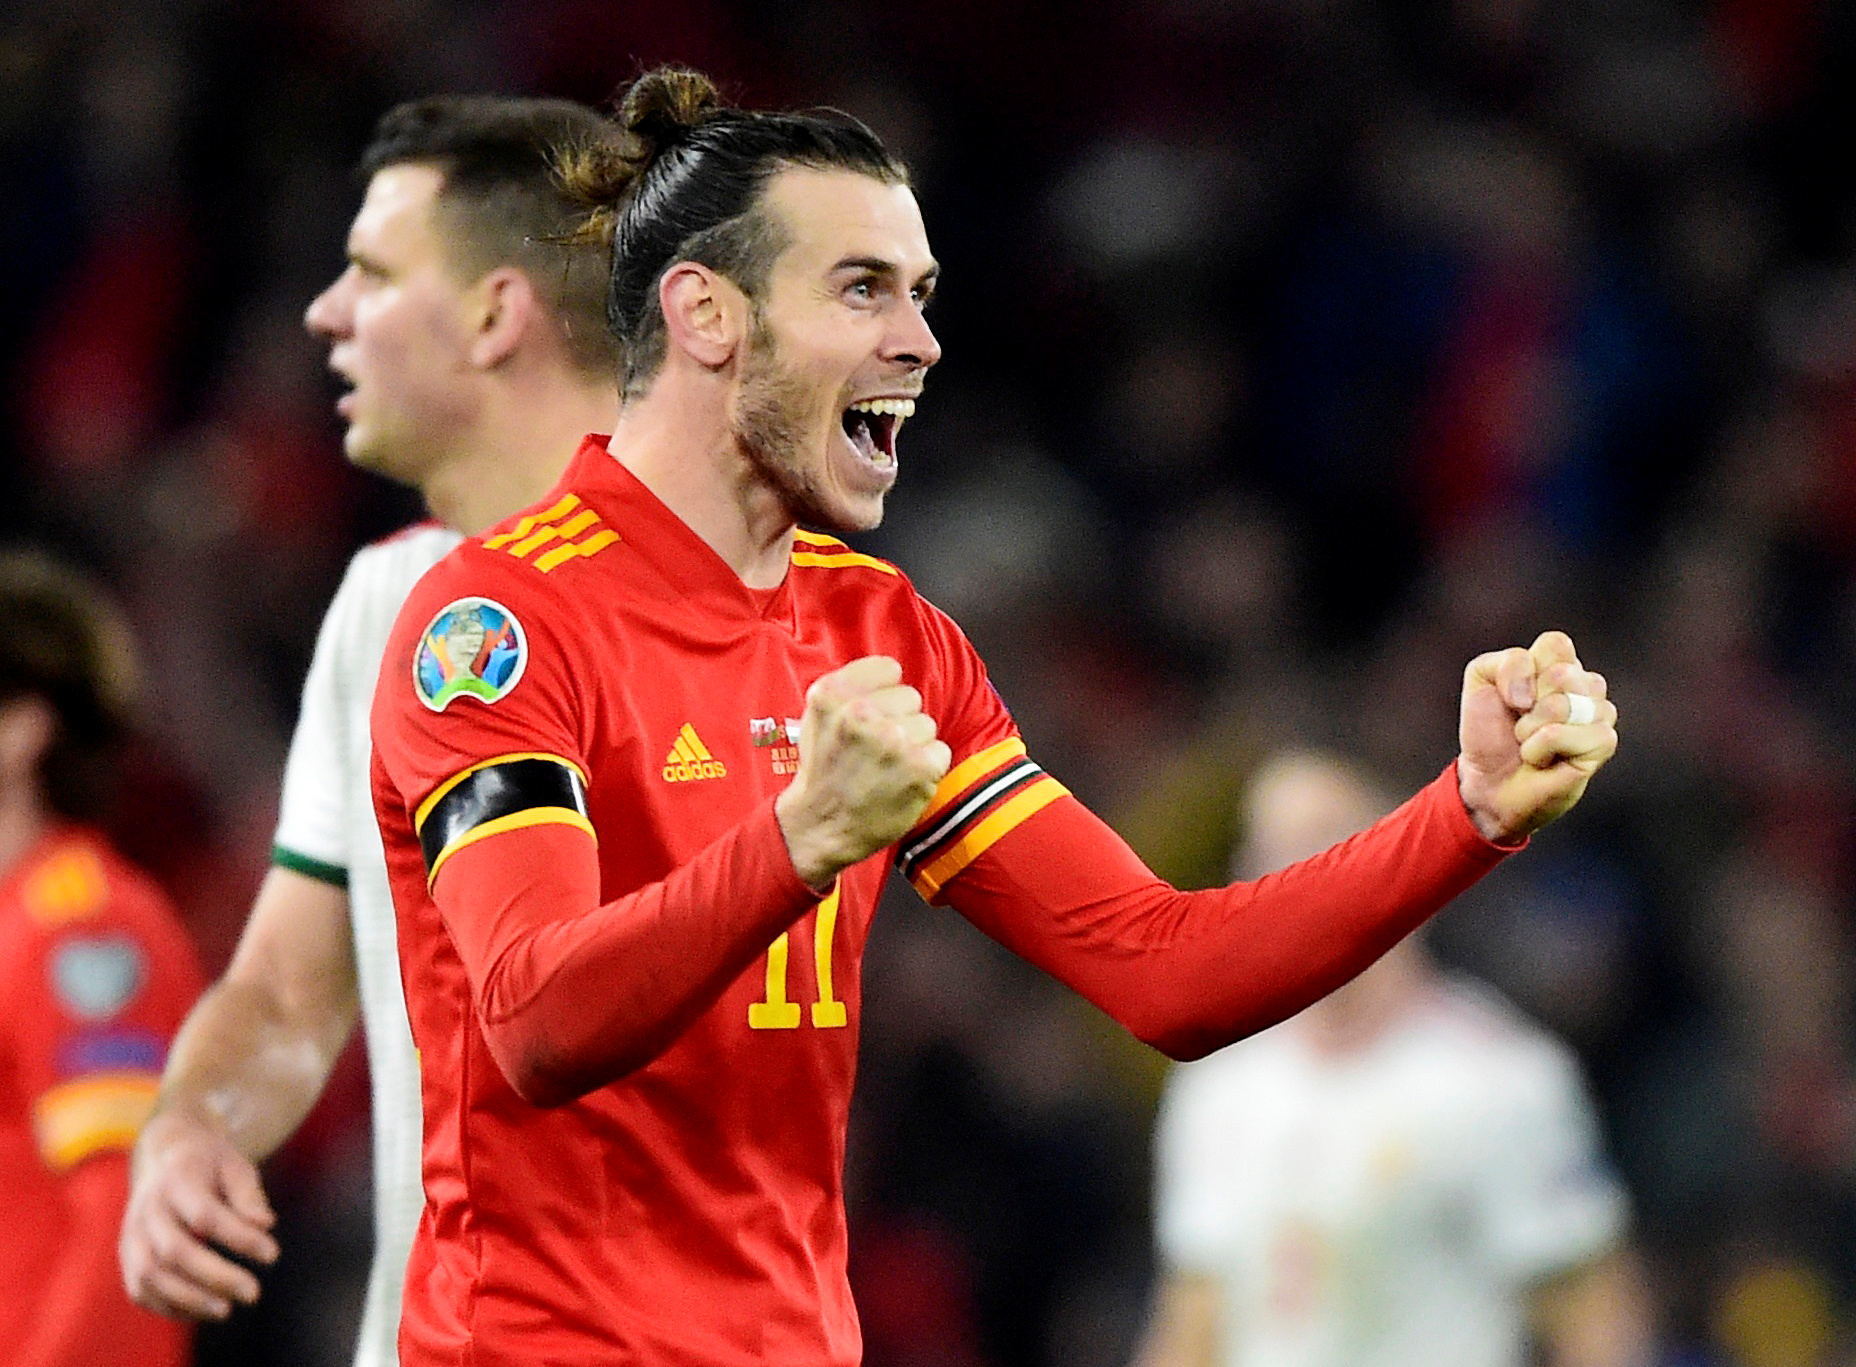 Gareth Bale mocks Real Madrid after Euro 2020 Qualification with Wales